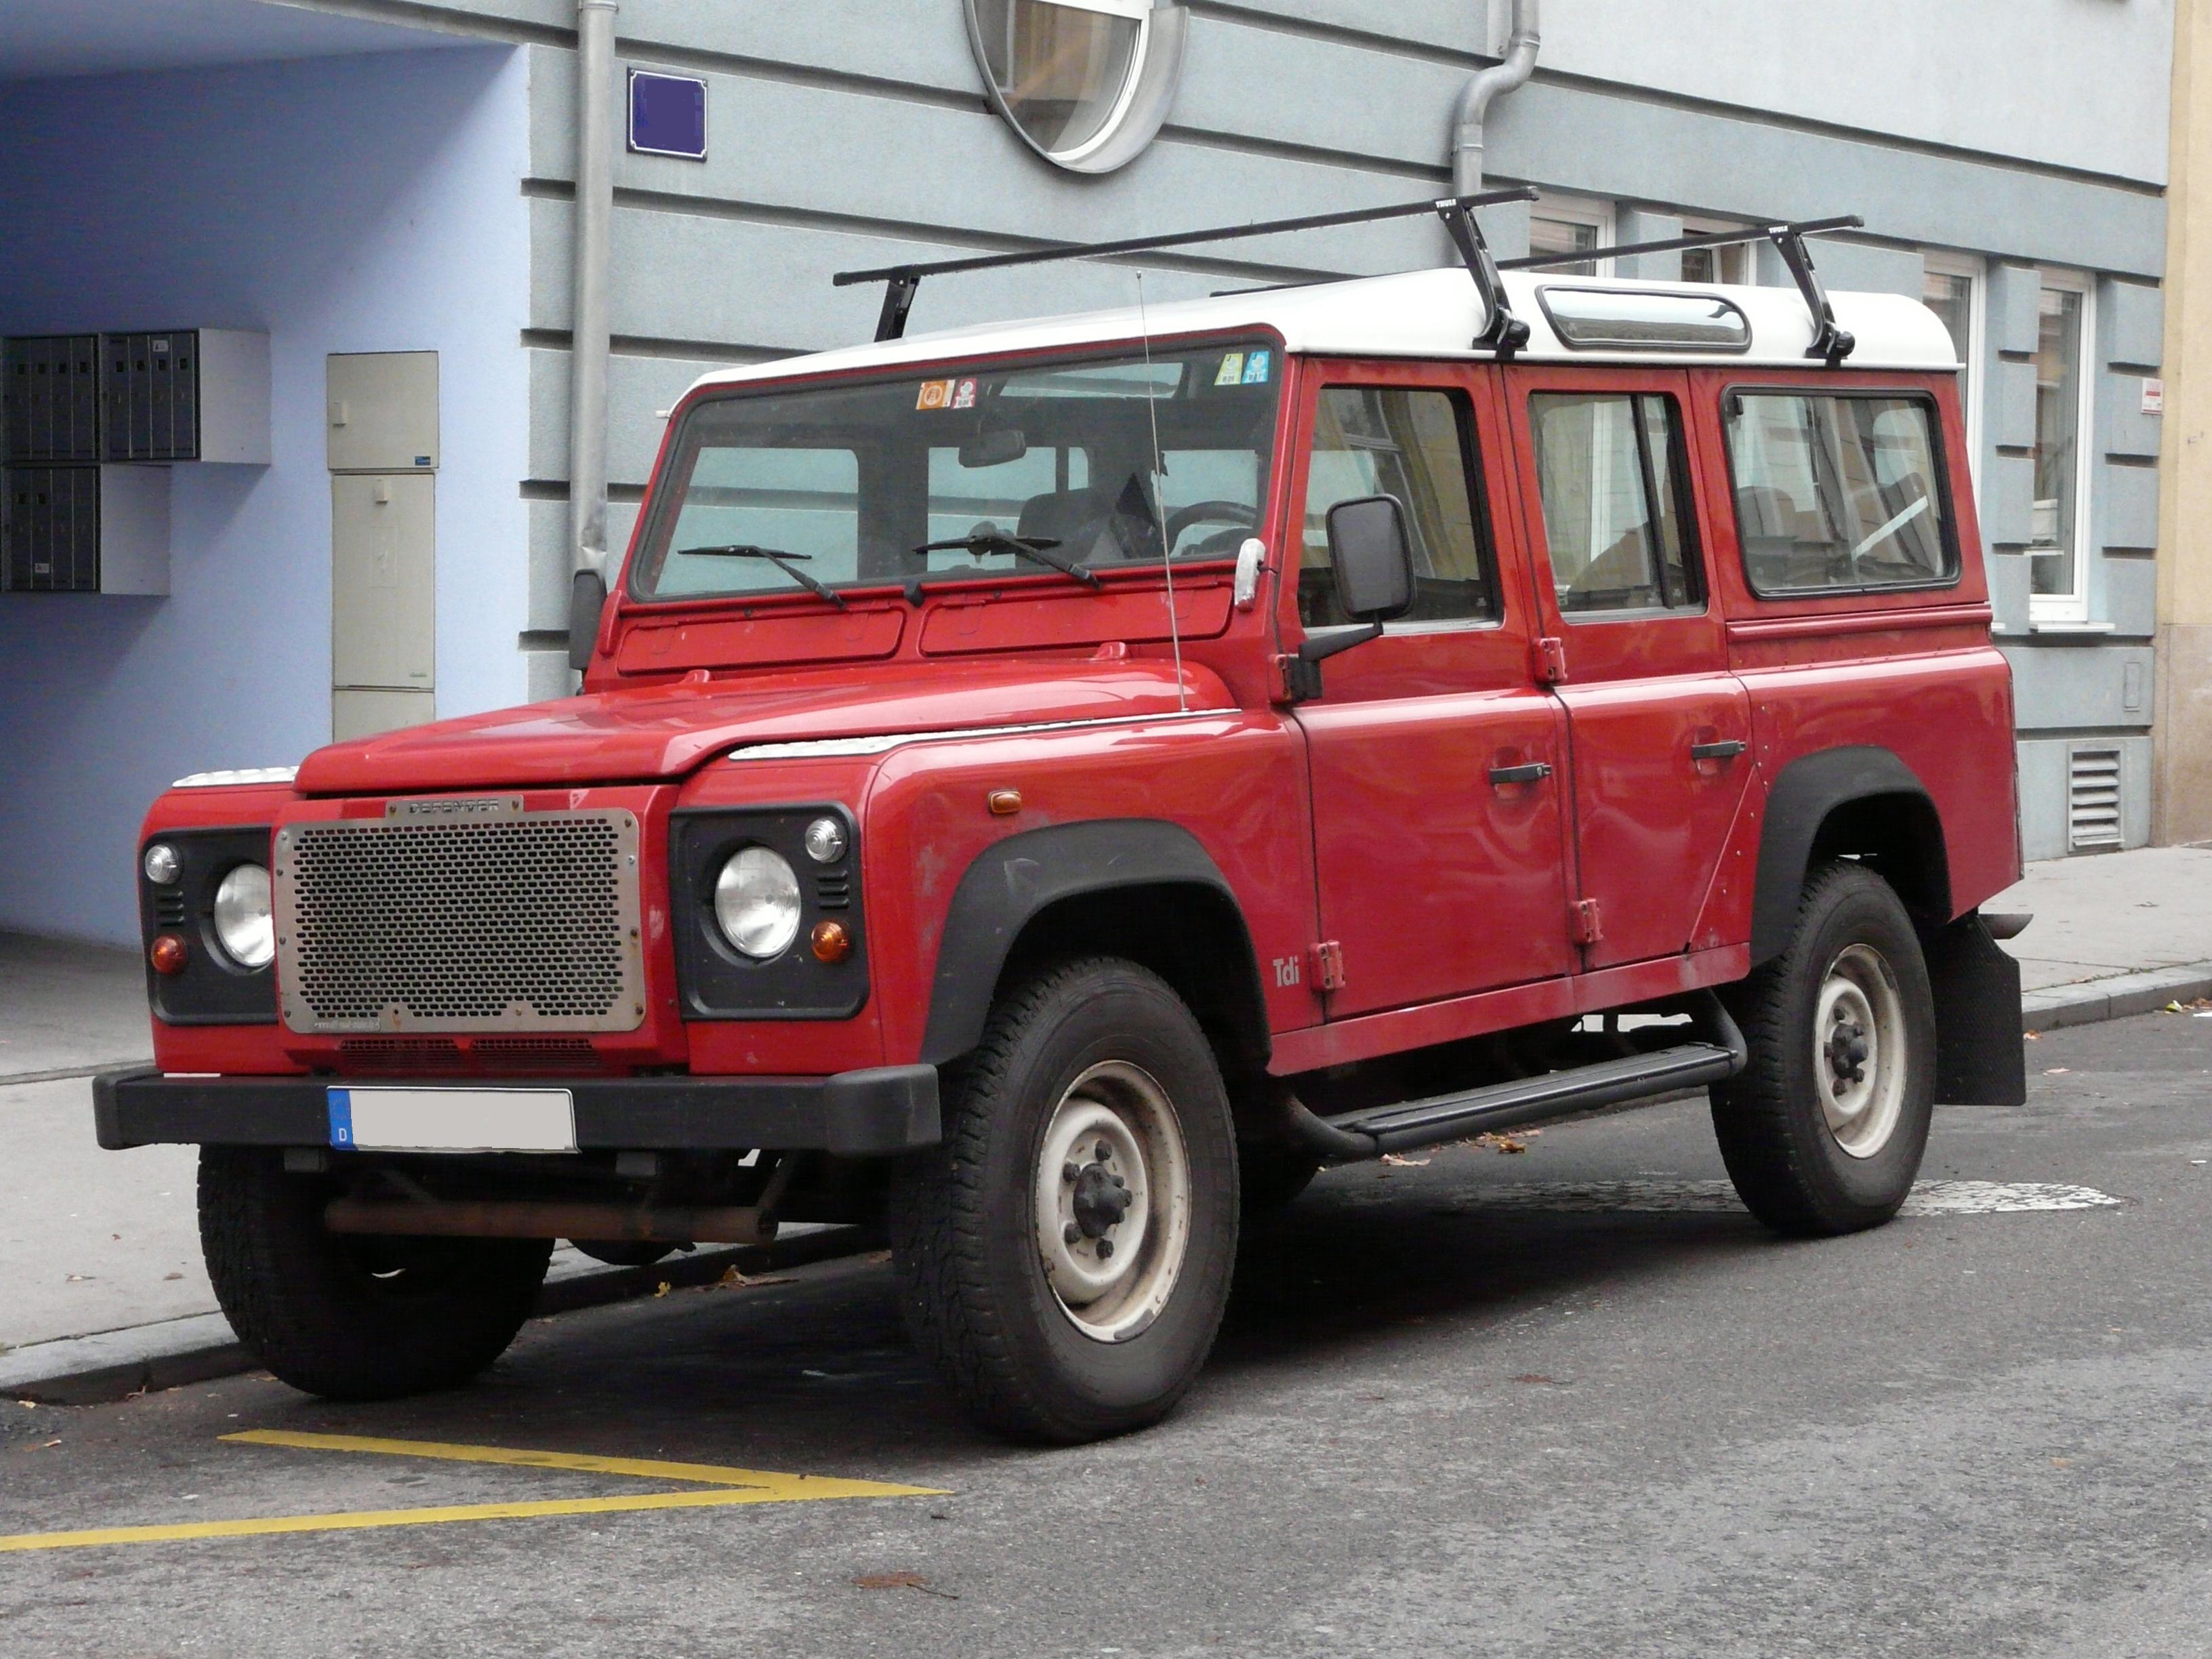 The Defender is a very